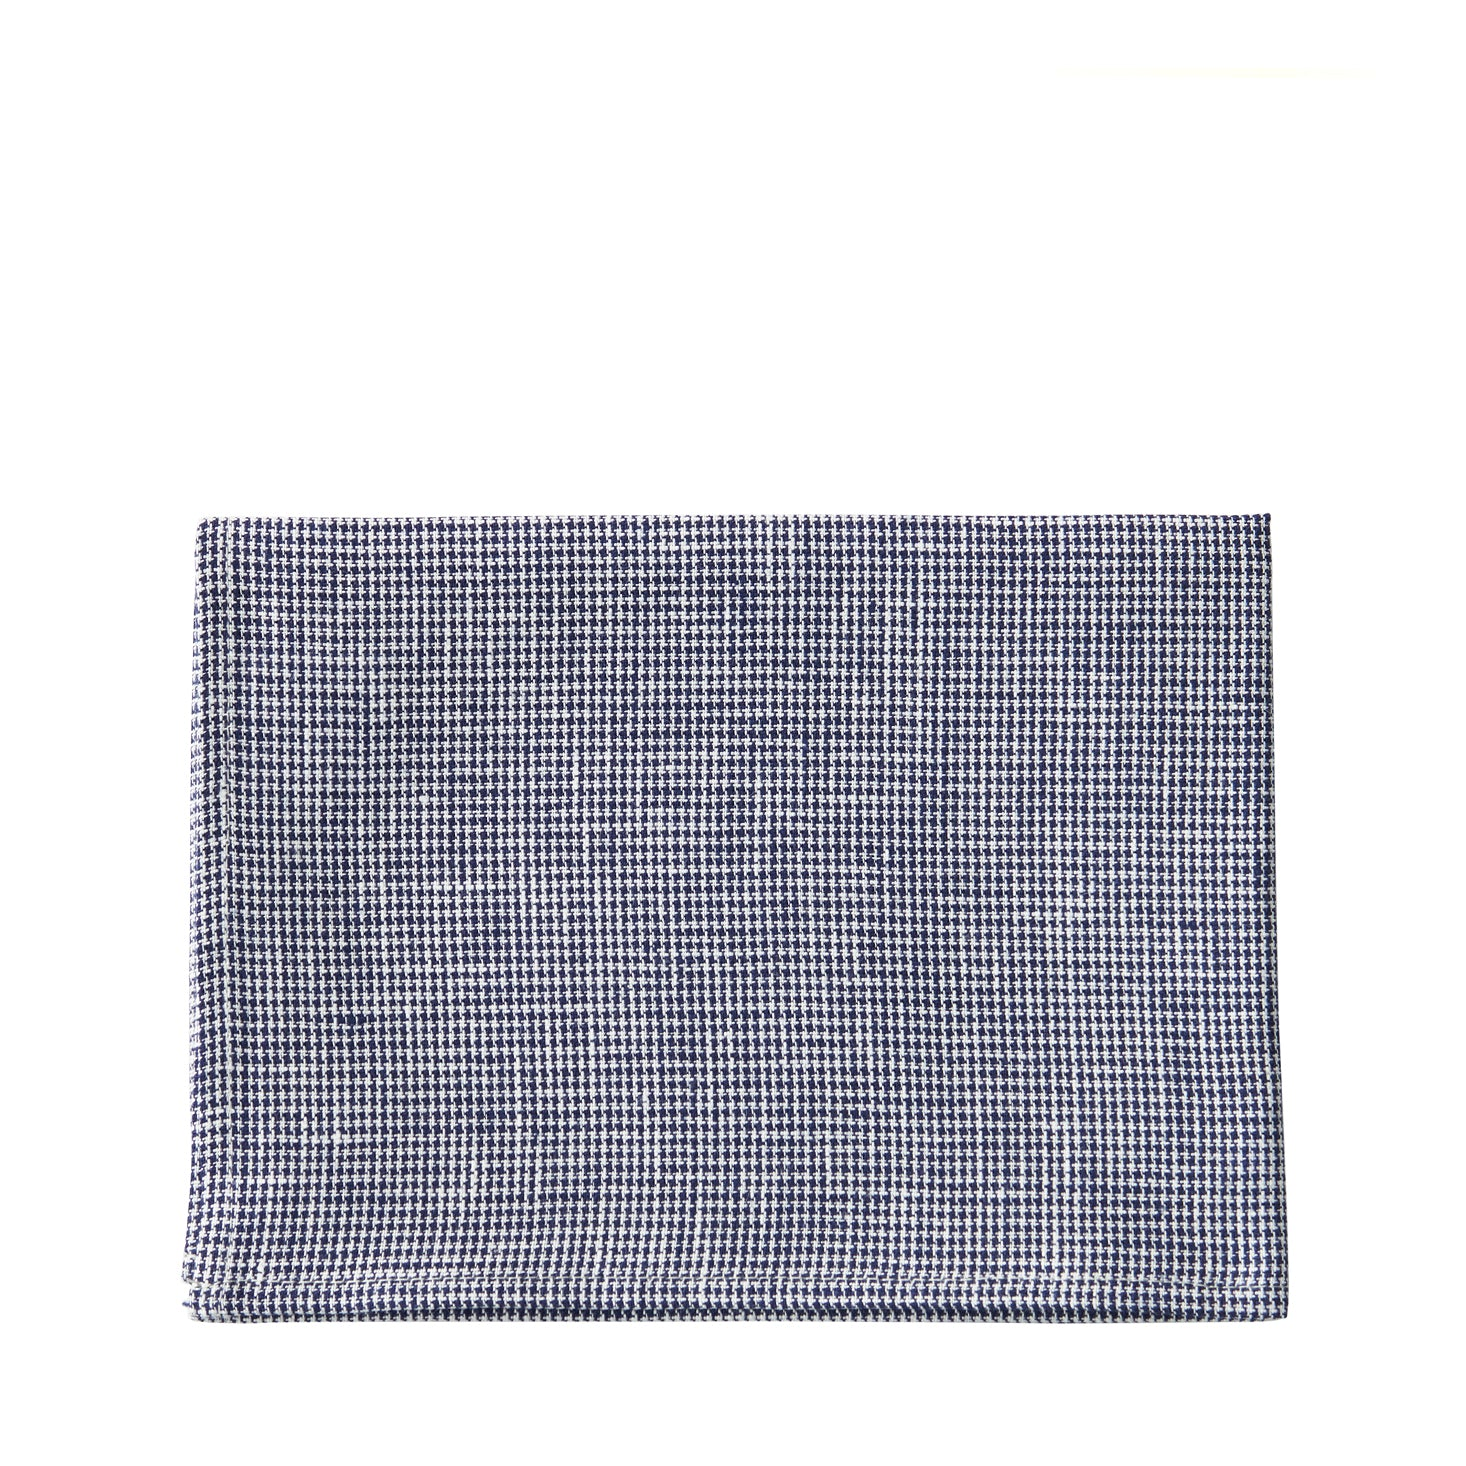 Fog Linen Work Tea Towel - Mia